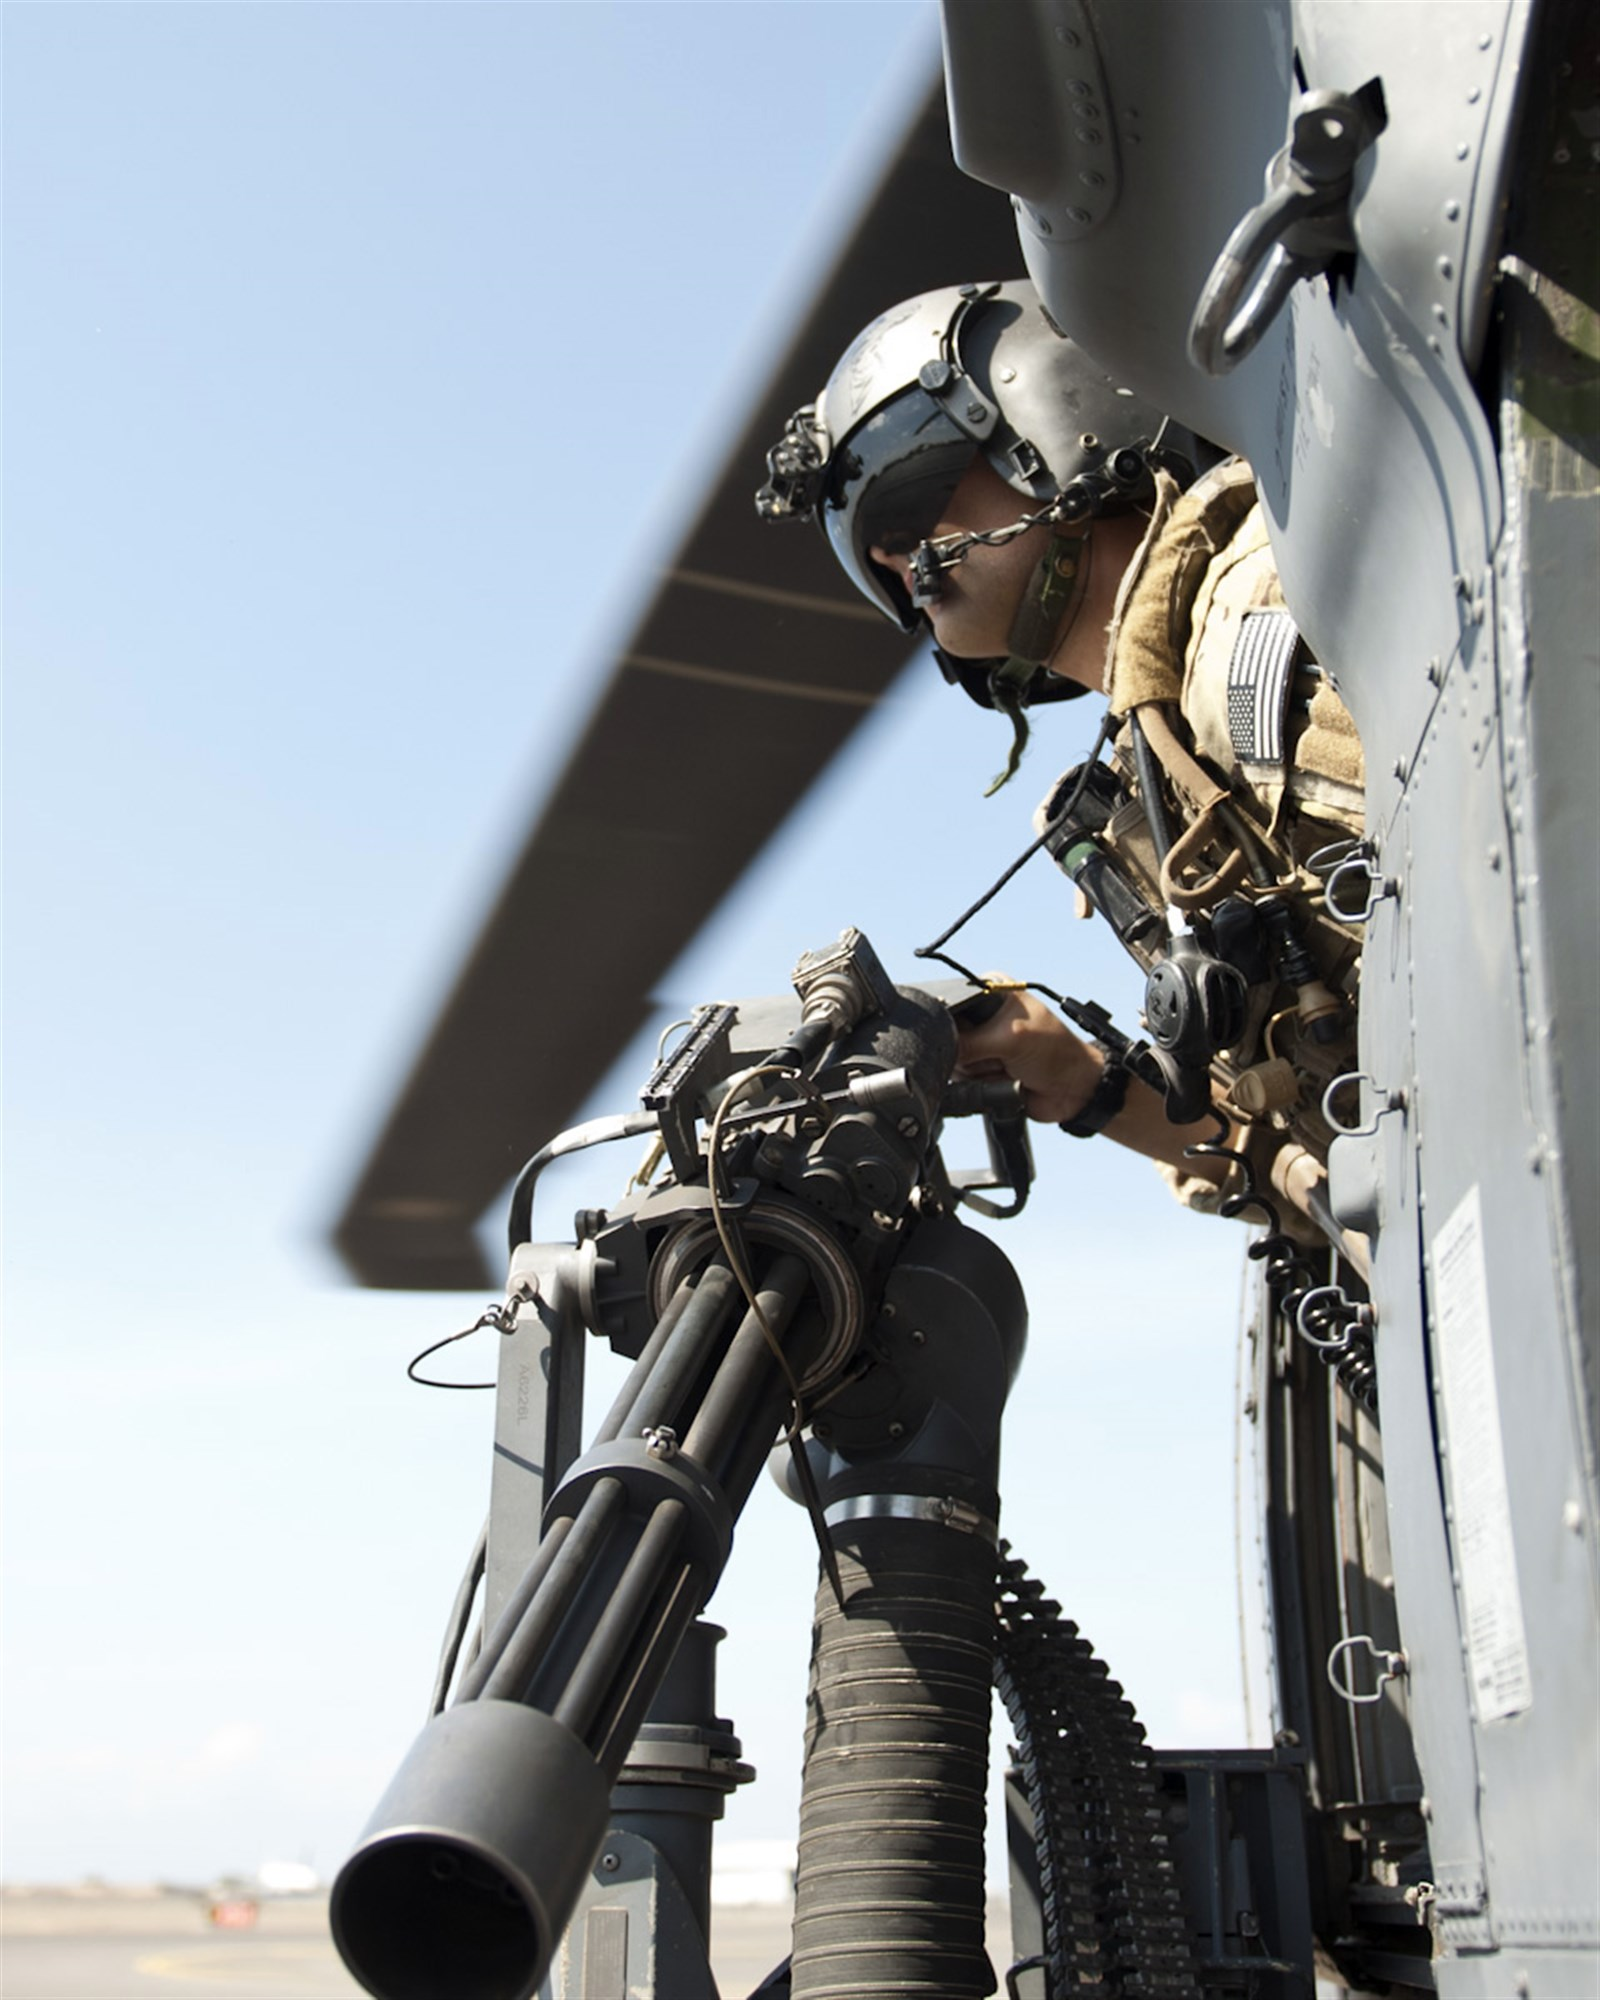 U.S. Air Force Master Sgt. Antonio Jimenez, 303rd Expeditionary Rescue Squadron special mission aviator, glances out of an HH-60 Pave Hawk during a 600-pound weight check at Camp Lemonnier, Djibouti on Jan. 26, 2015. The Weight check was part of the flight inspection to ensure everything is operable prior to a mission. (U.S. Air Force photo by Staff Sgt. Kevin Iinuma)